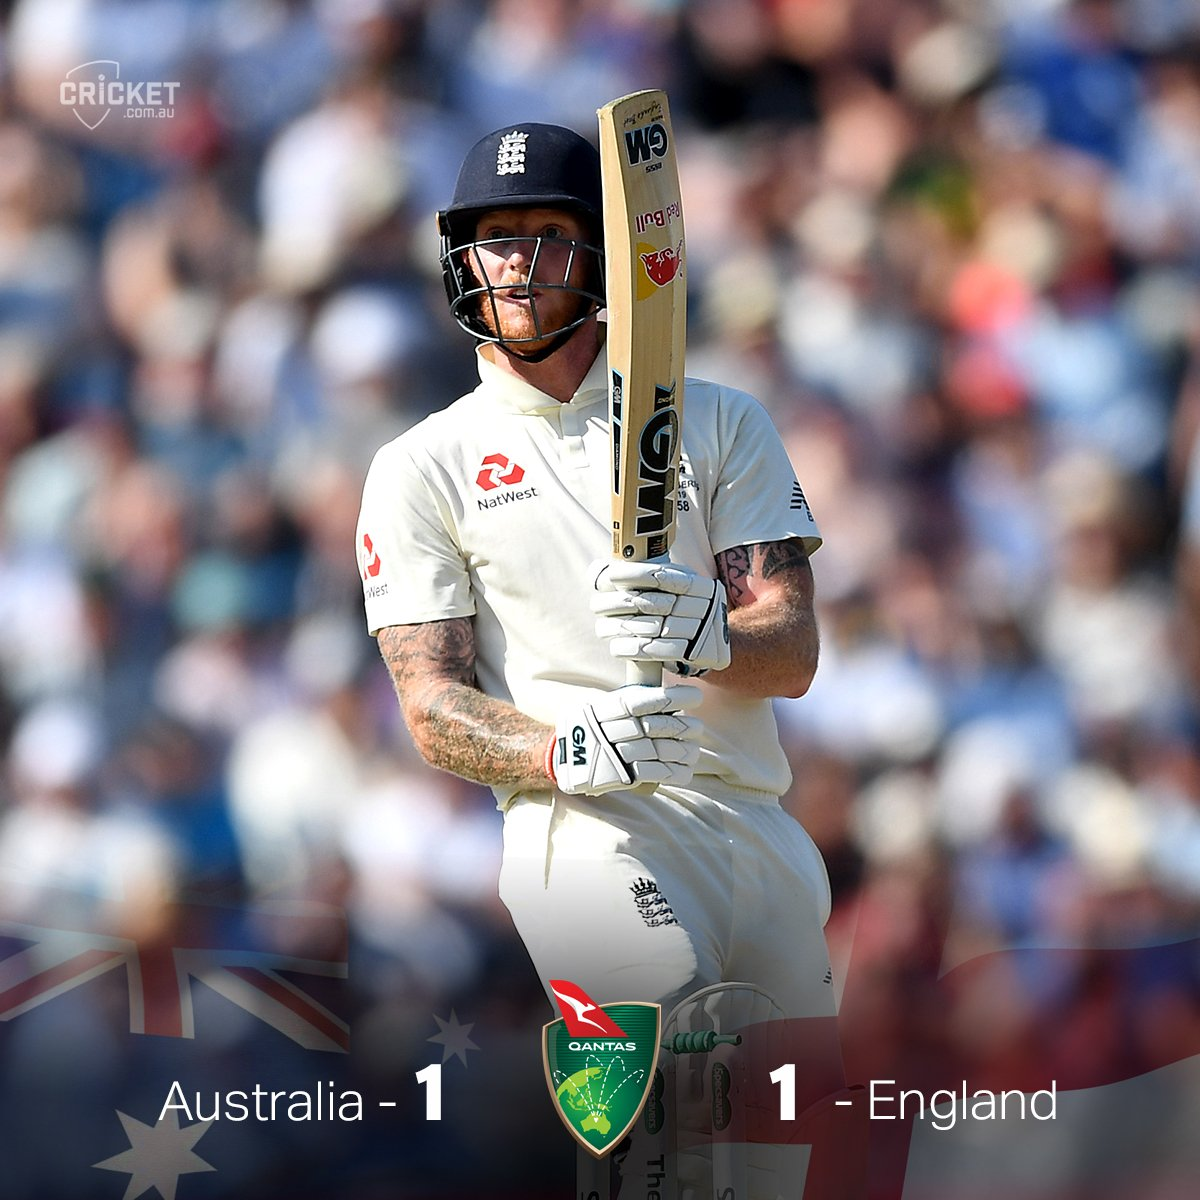 ENGLAND WIN. WOW. Ben Stokes (135*) pulls off the unthinkable to level the series at 1-1 with a record-breaking run chase.  Instant #Ashes classic:  https:// cricketa.us/Ashes19-3    <br>http://pic.twitter.com/gYhBqVEksy